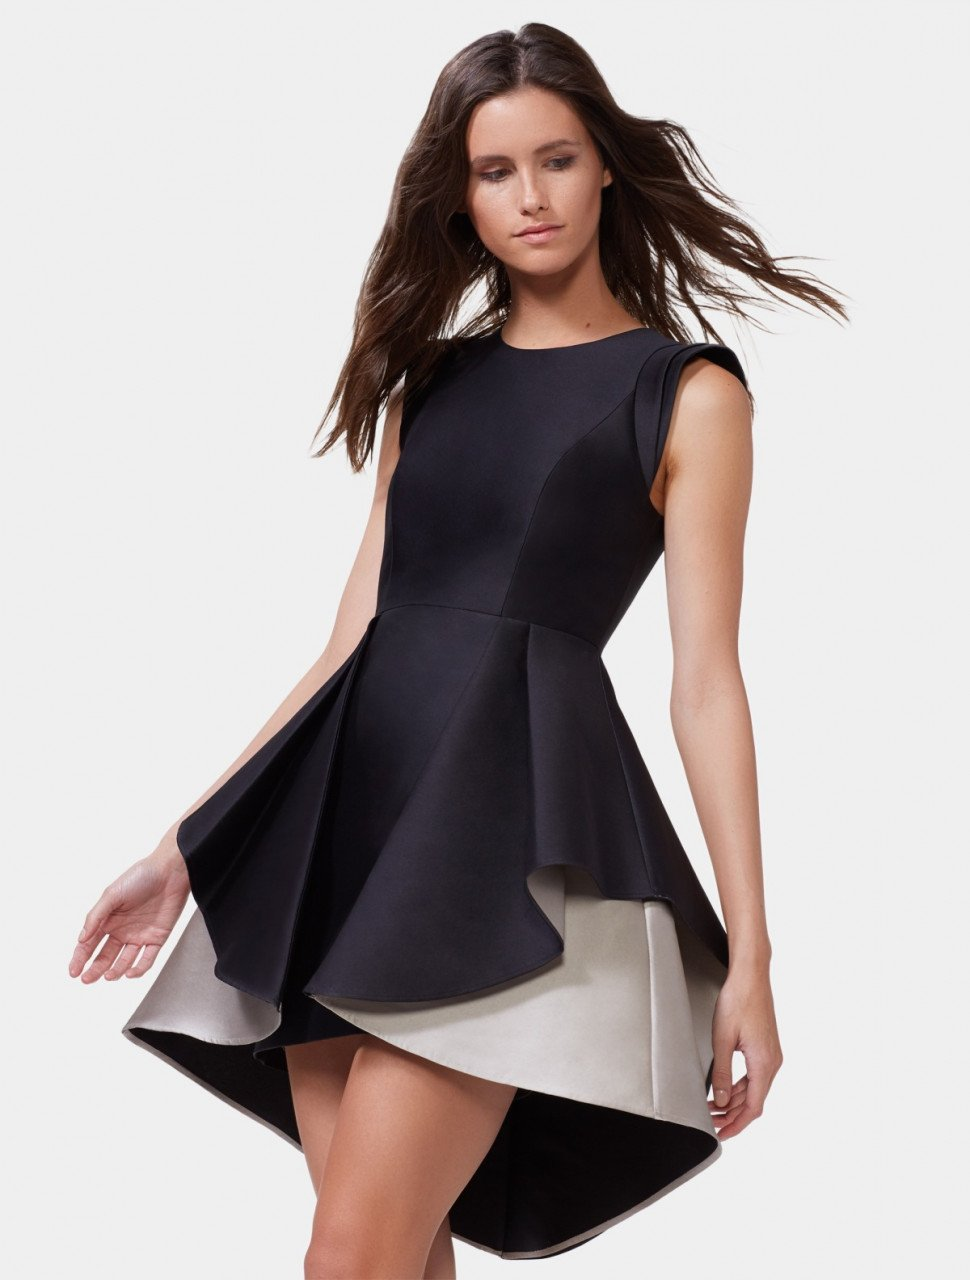 COLORBLOCKED FIT AND FLARE DRESS